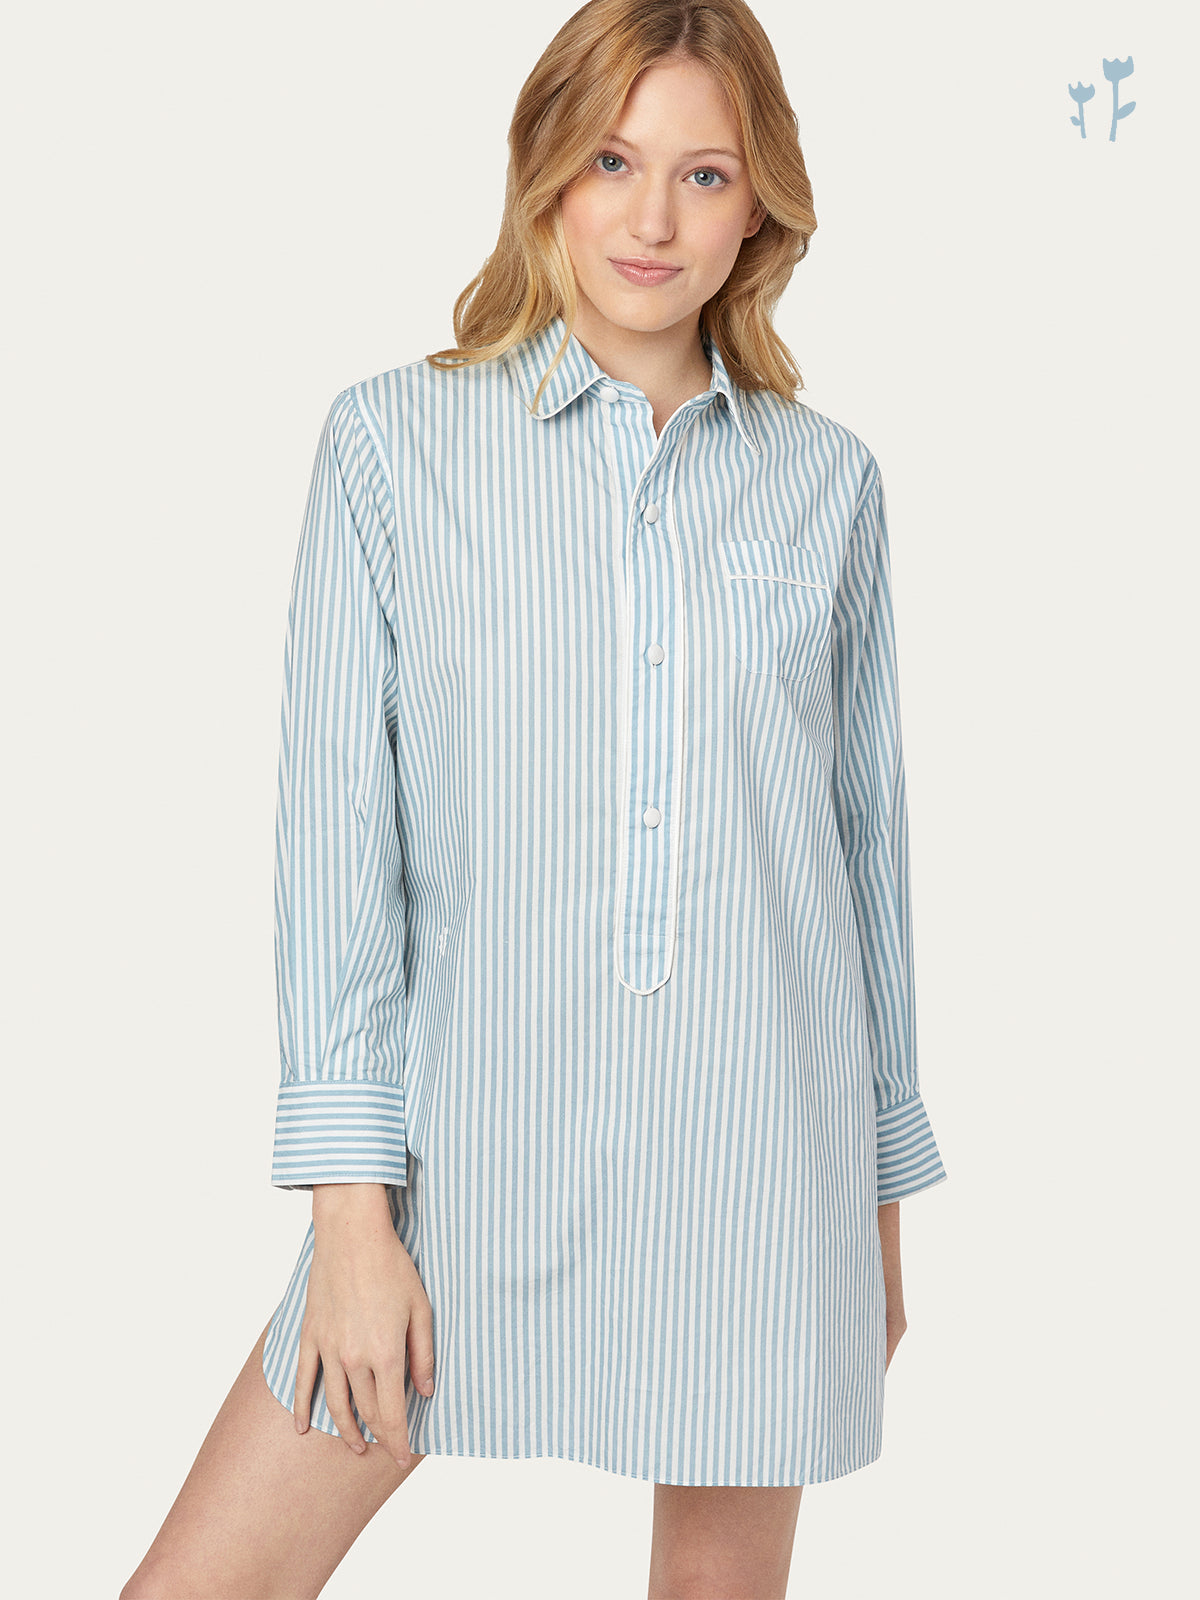 Linnet Night Shirt in Sky Stripe By Morgan Lane